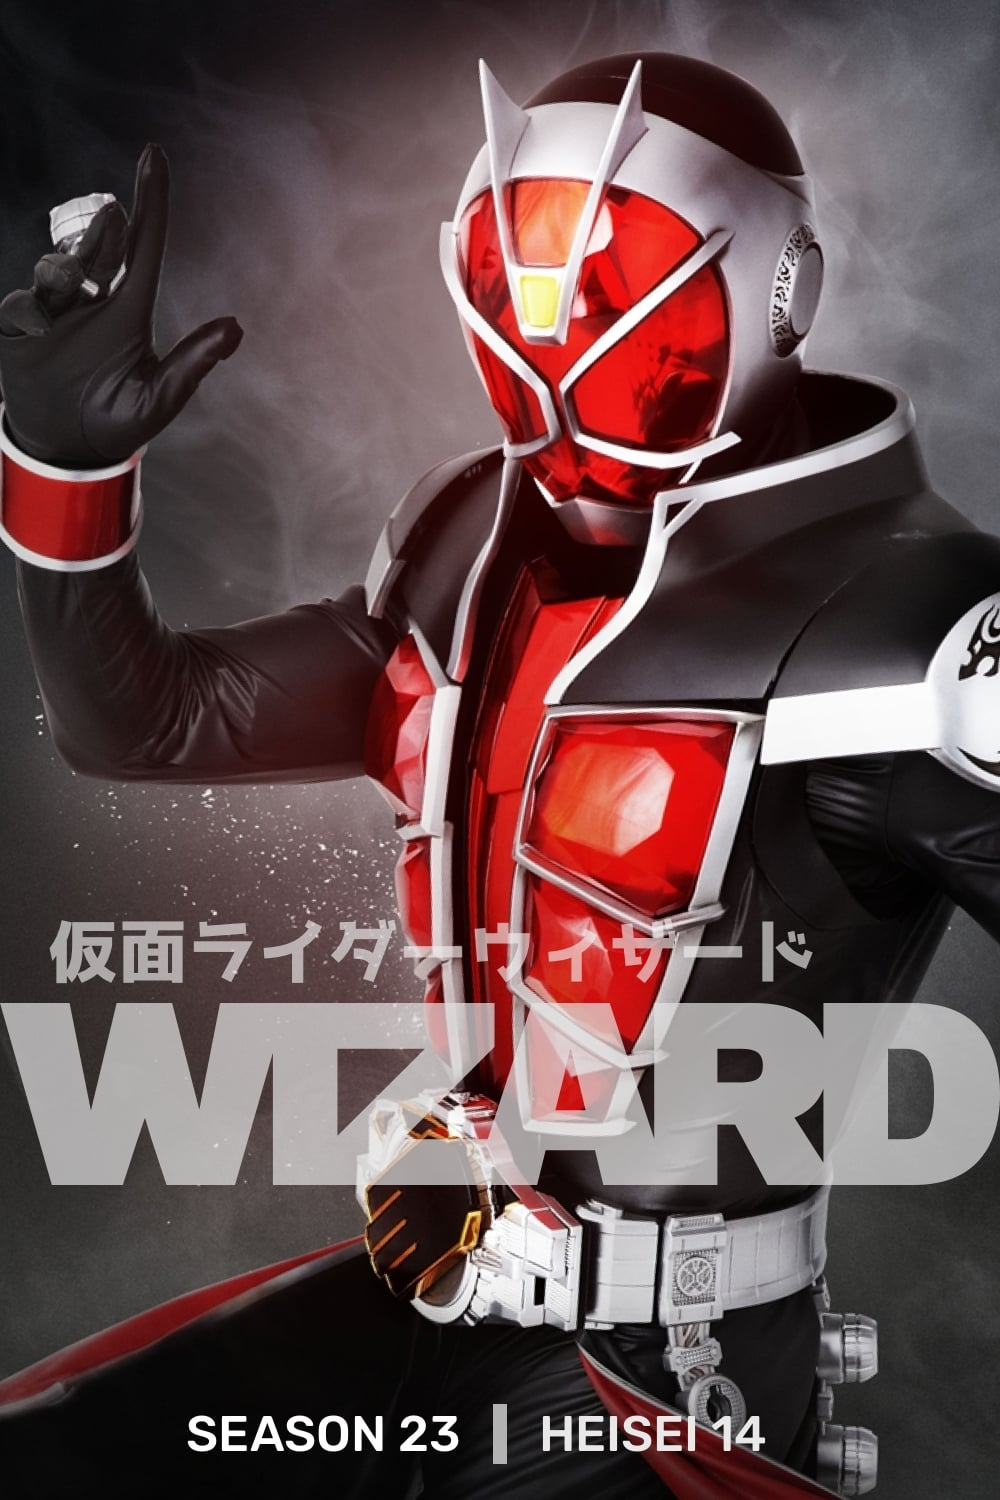 Kamen Rider - Season 21 Episode 1 : Medal, Underwear, Mysterious Arm Season 23